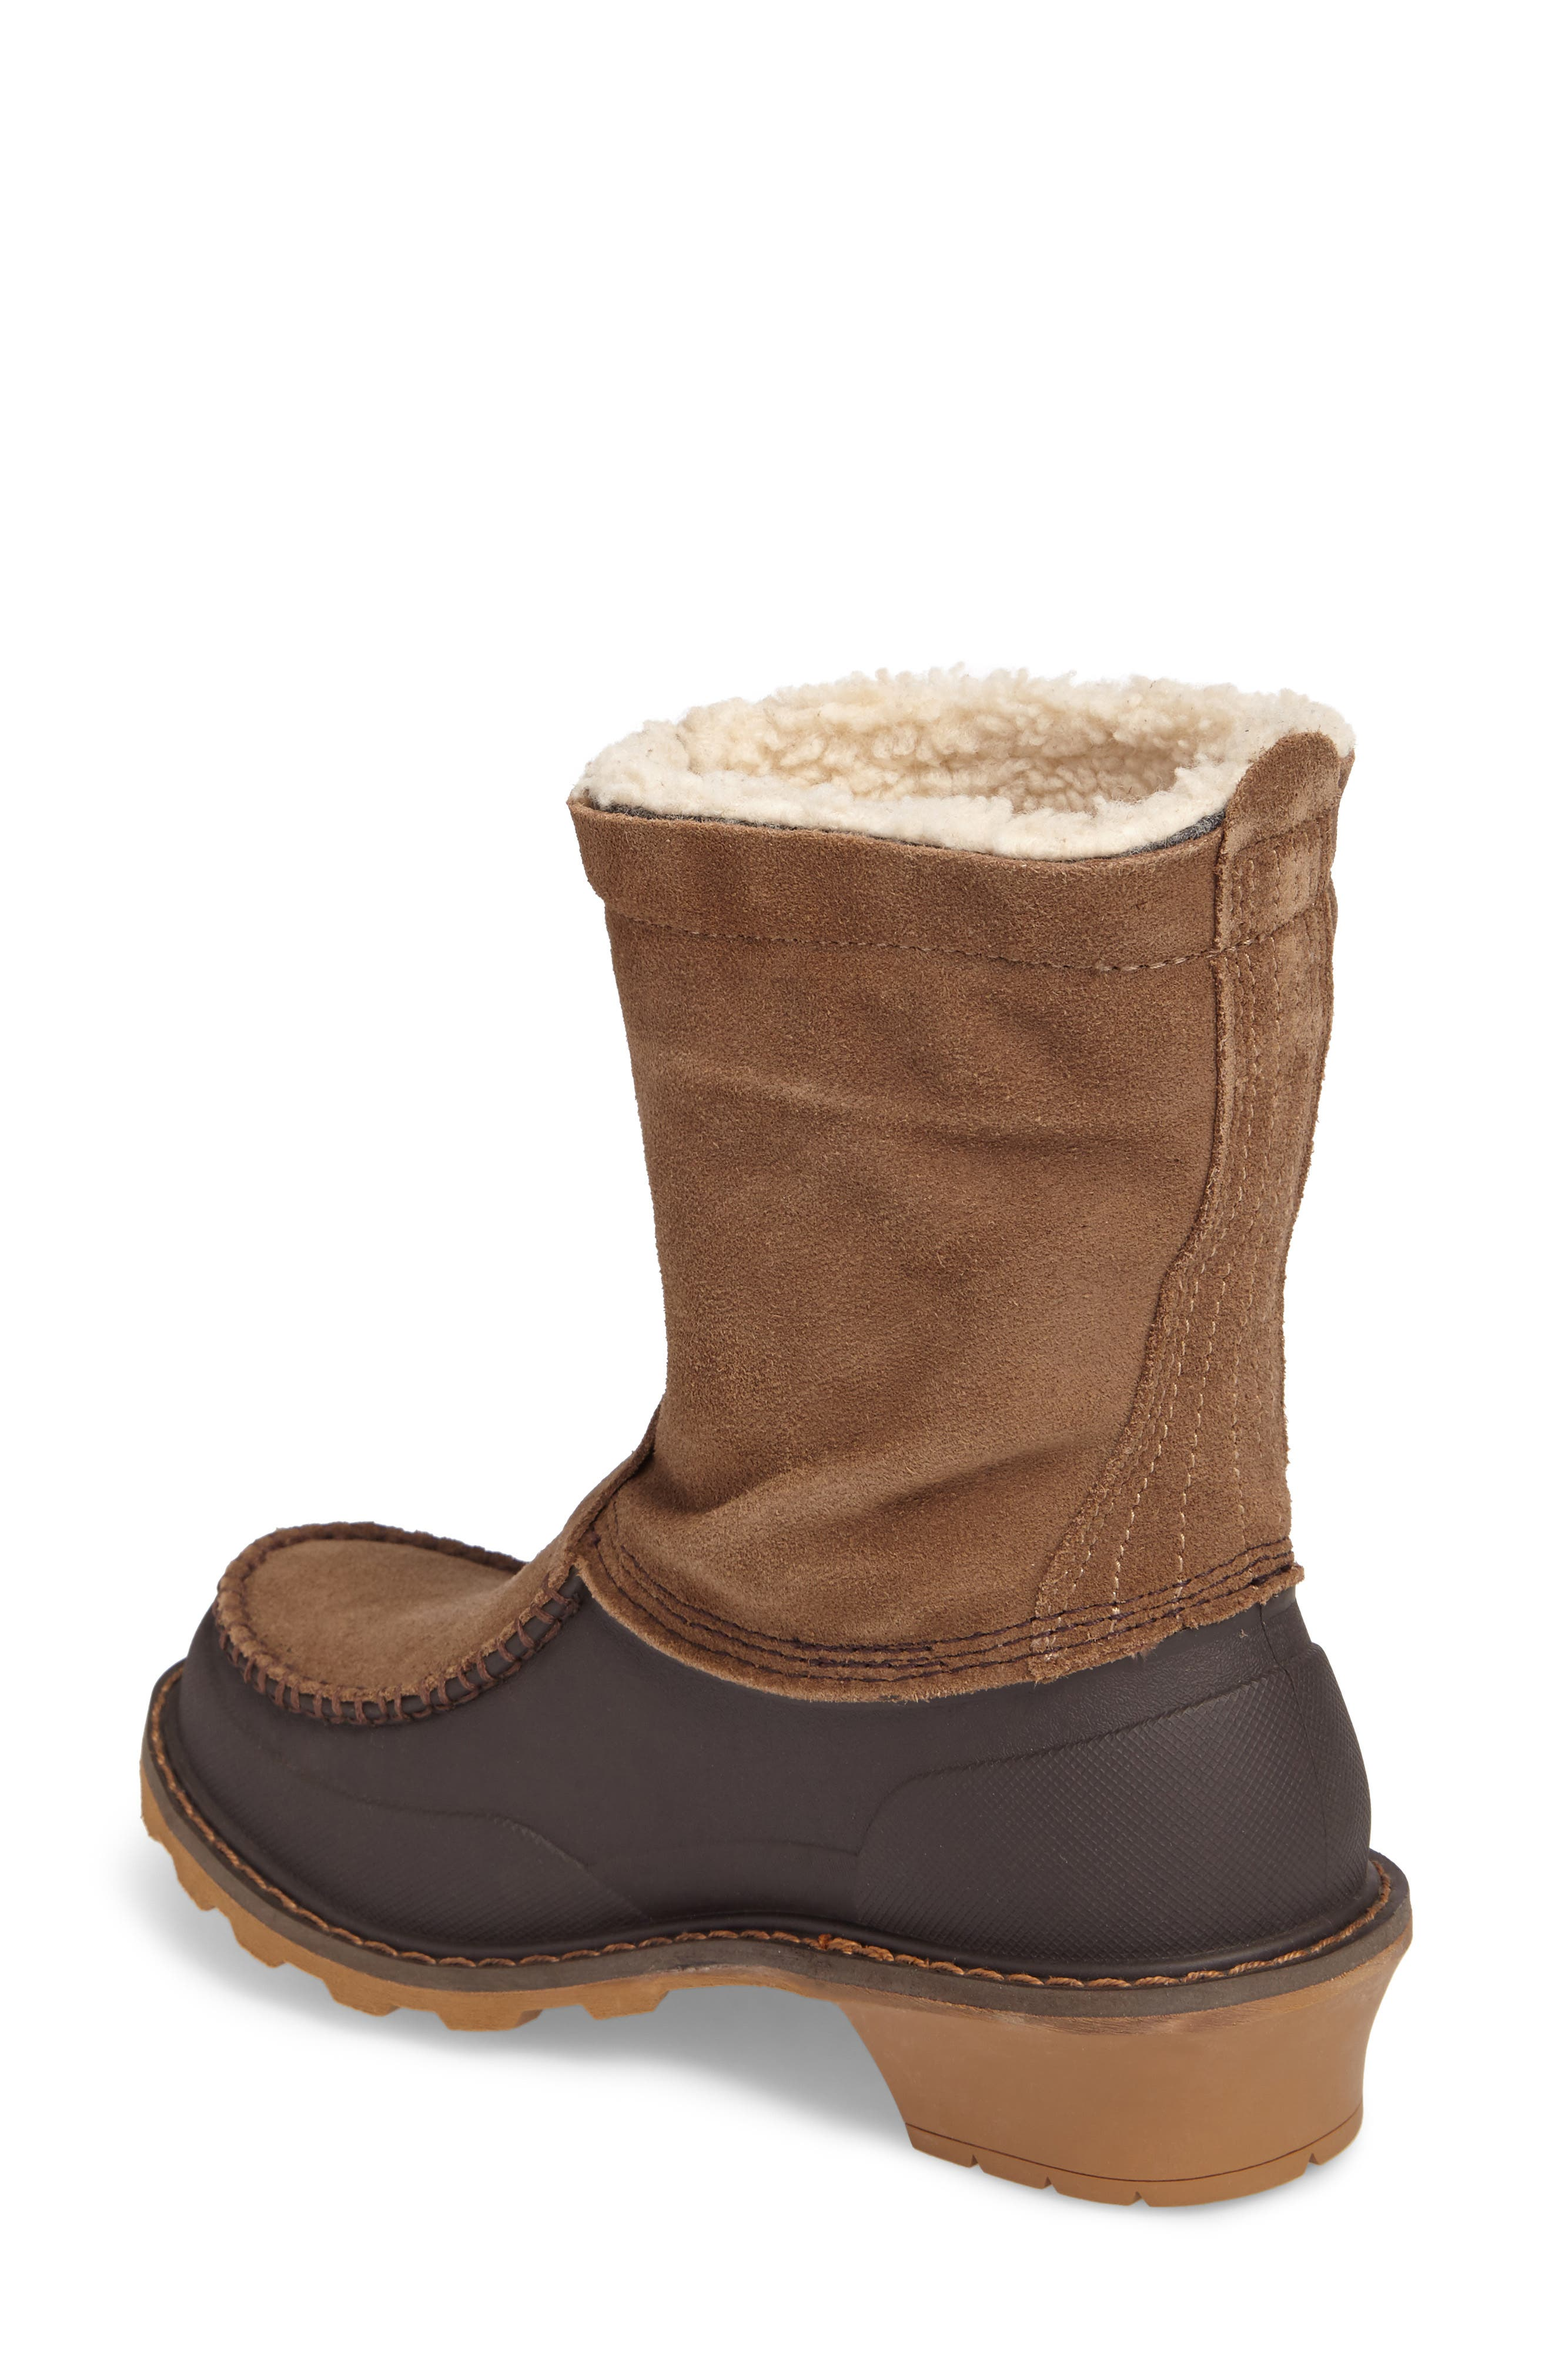 Fully Wooly Waterproof Winter Boot,                             Alternate thumbnail 4, color,